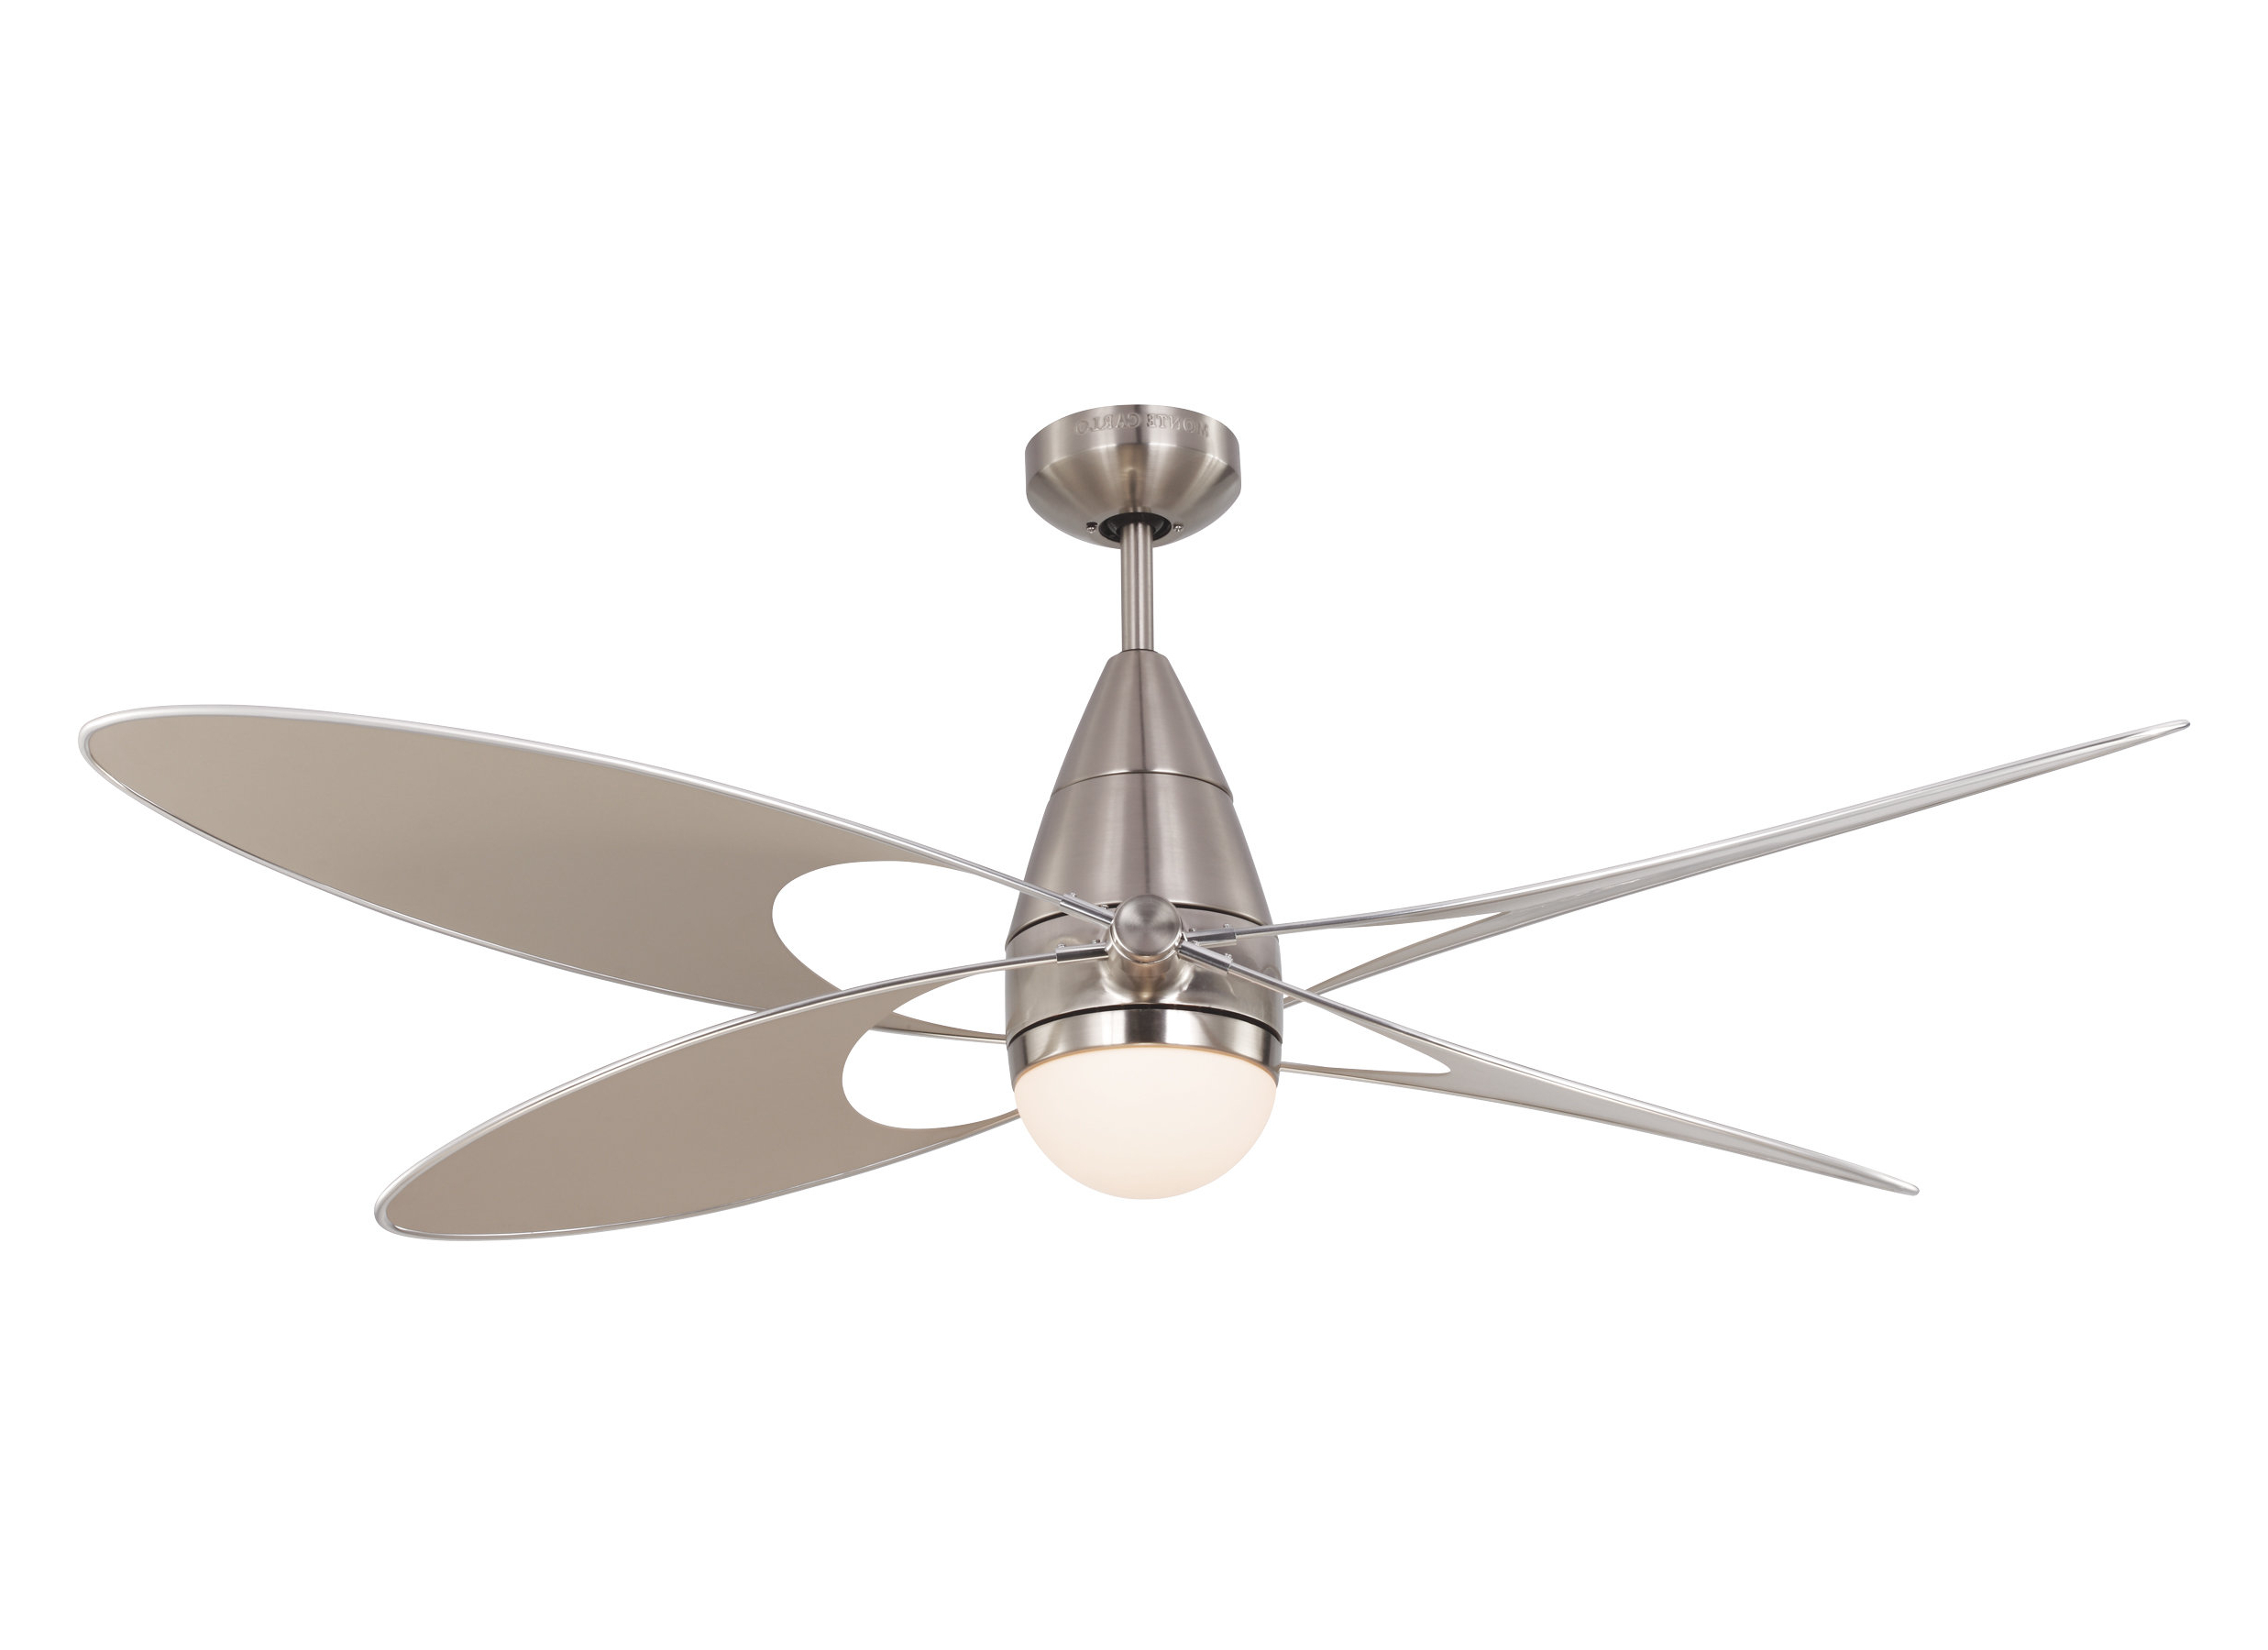 "Widely Used Rainman 5 Blade Outdoor Ceiling Fans Regarding 54"" Clorinda Butterfly 4 Blade Outdoor Ceiling Fan With Remote (View 18 of 20)"